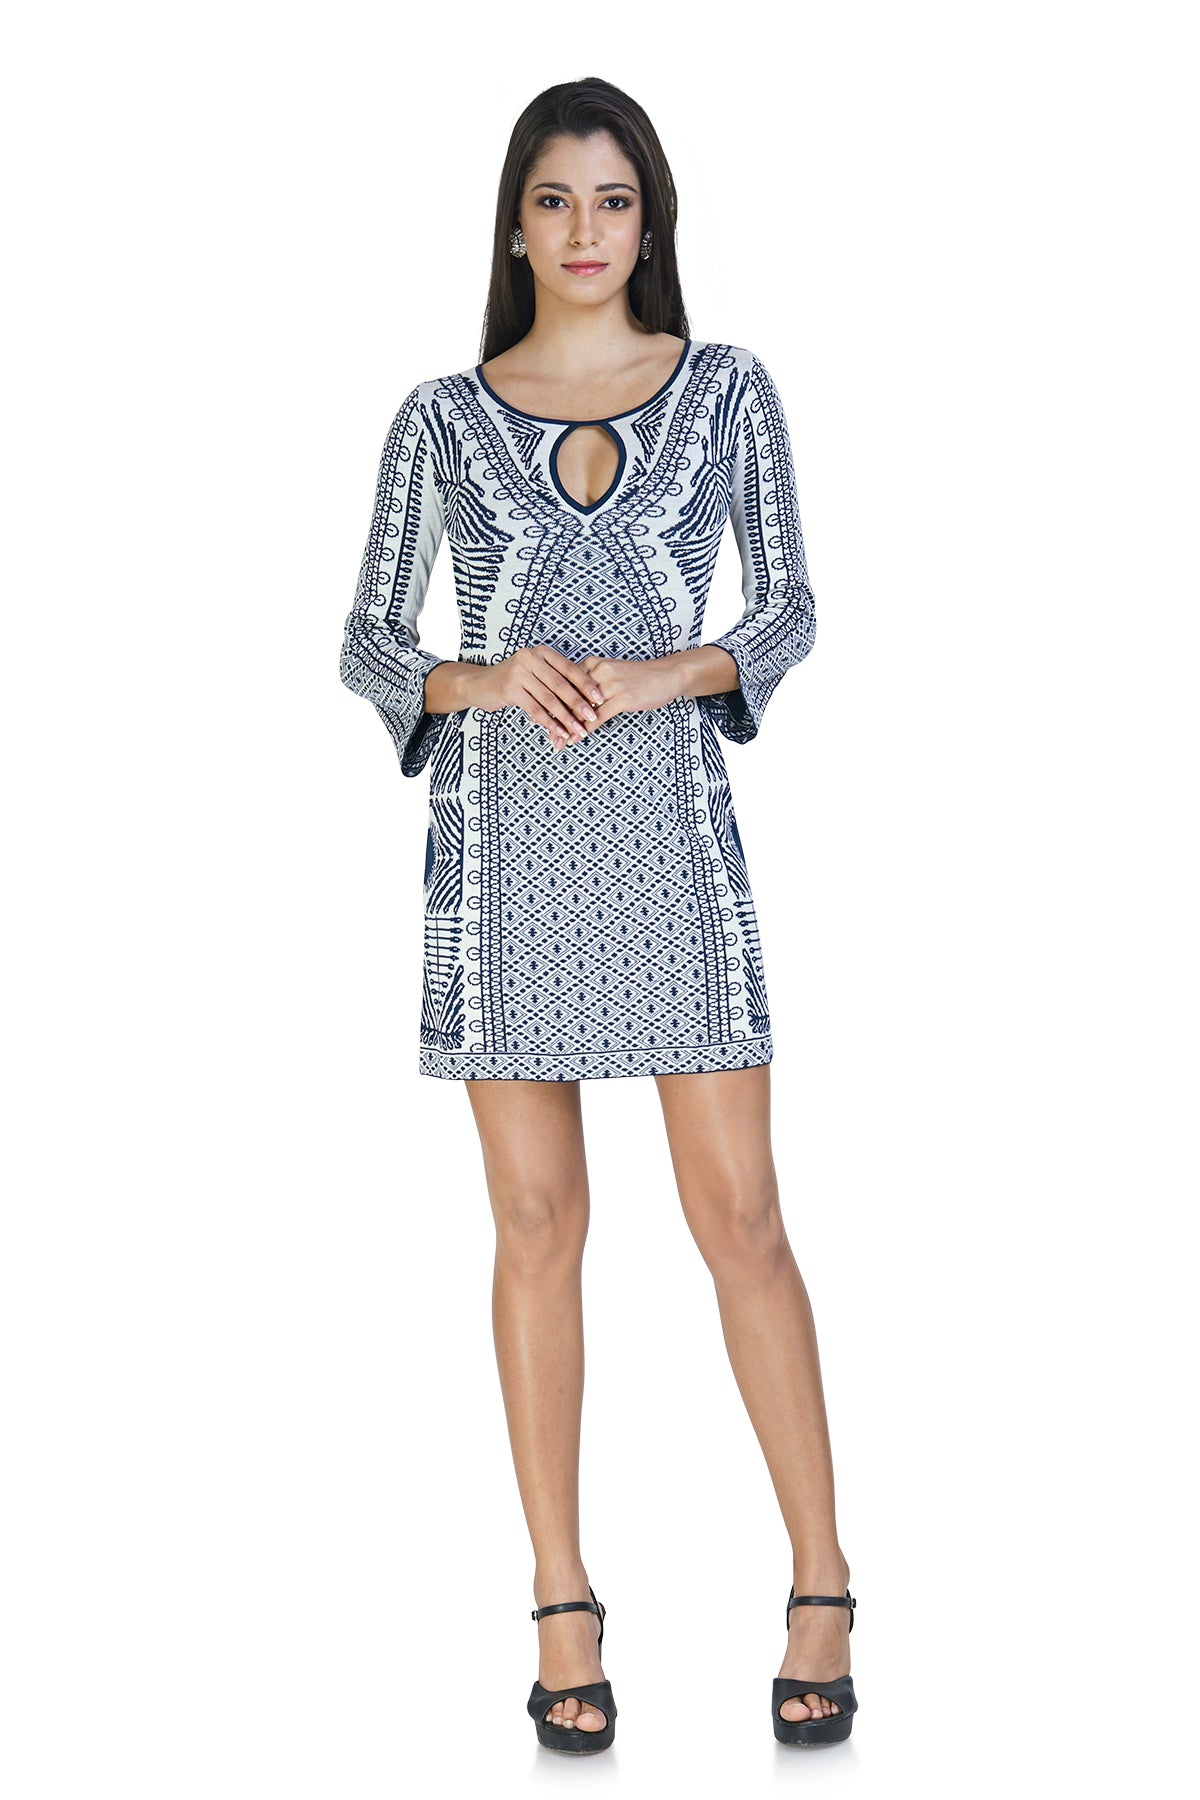 White and blue knit dress with keyhole and printed patterns on both sides fits rightly in both casual and formal category.